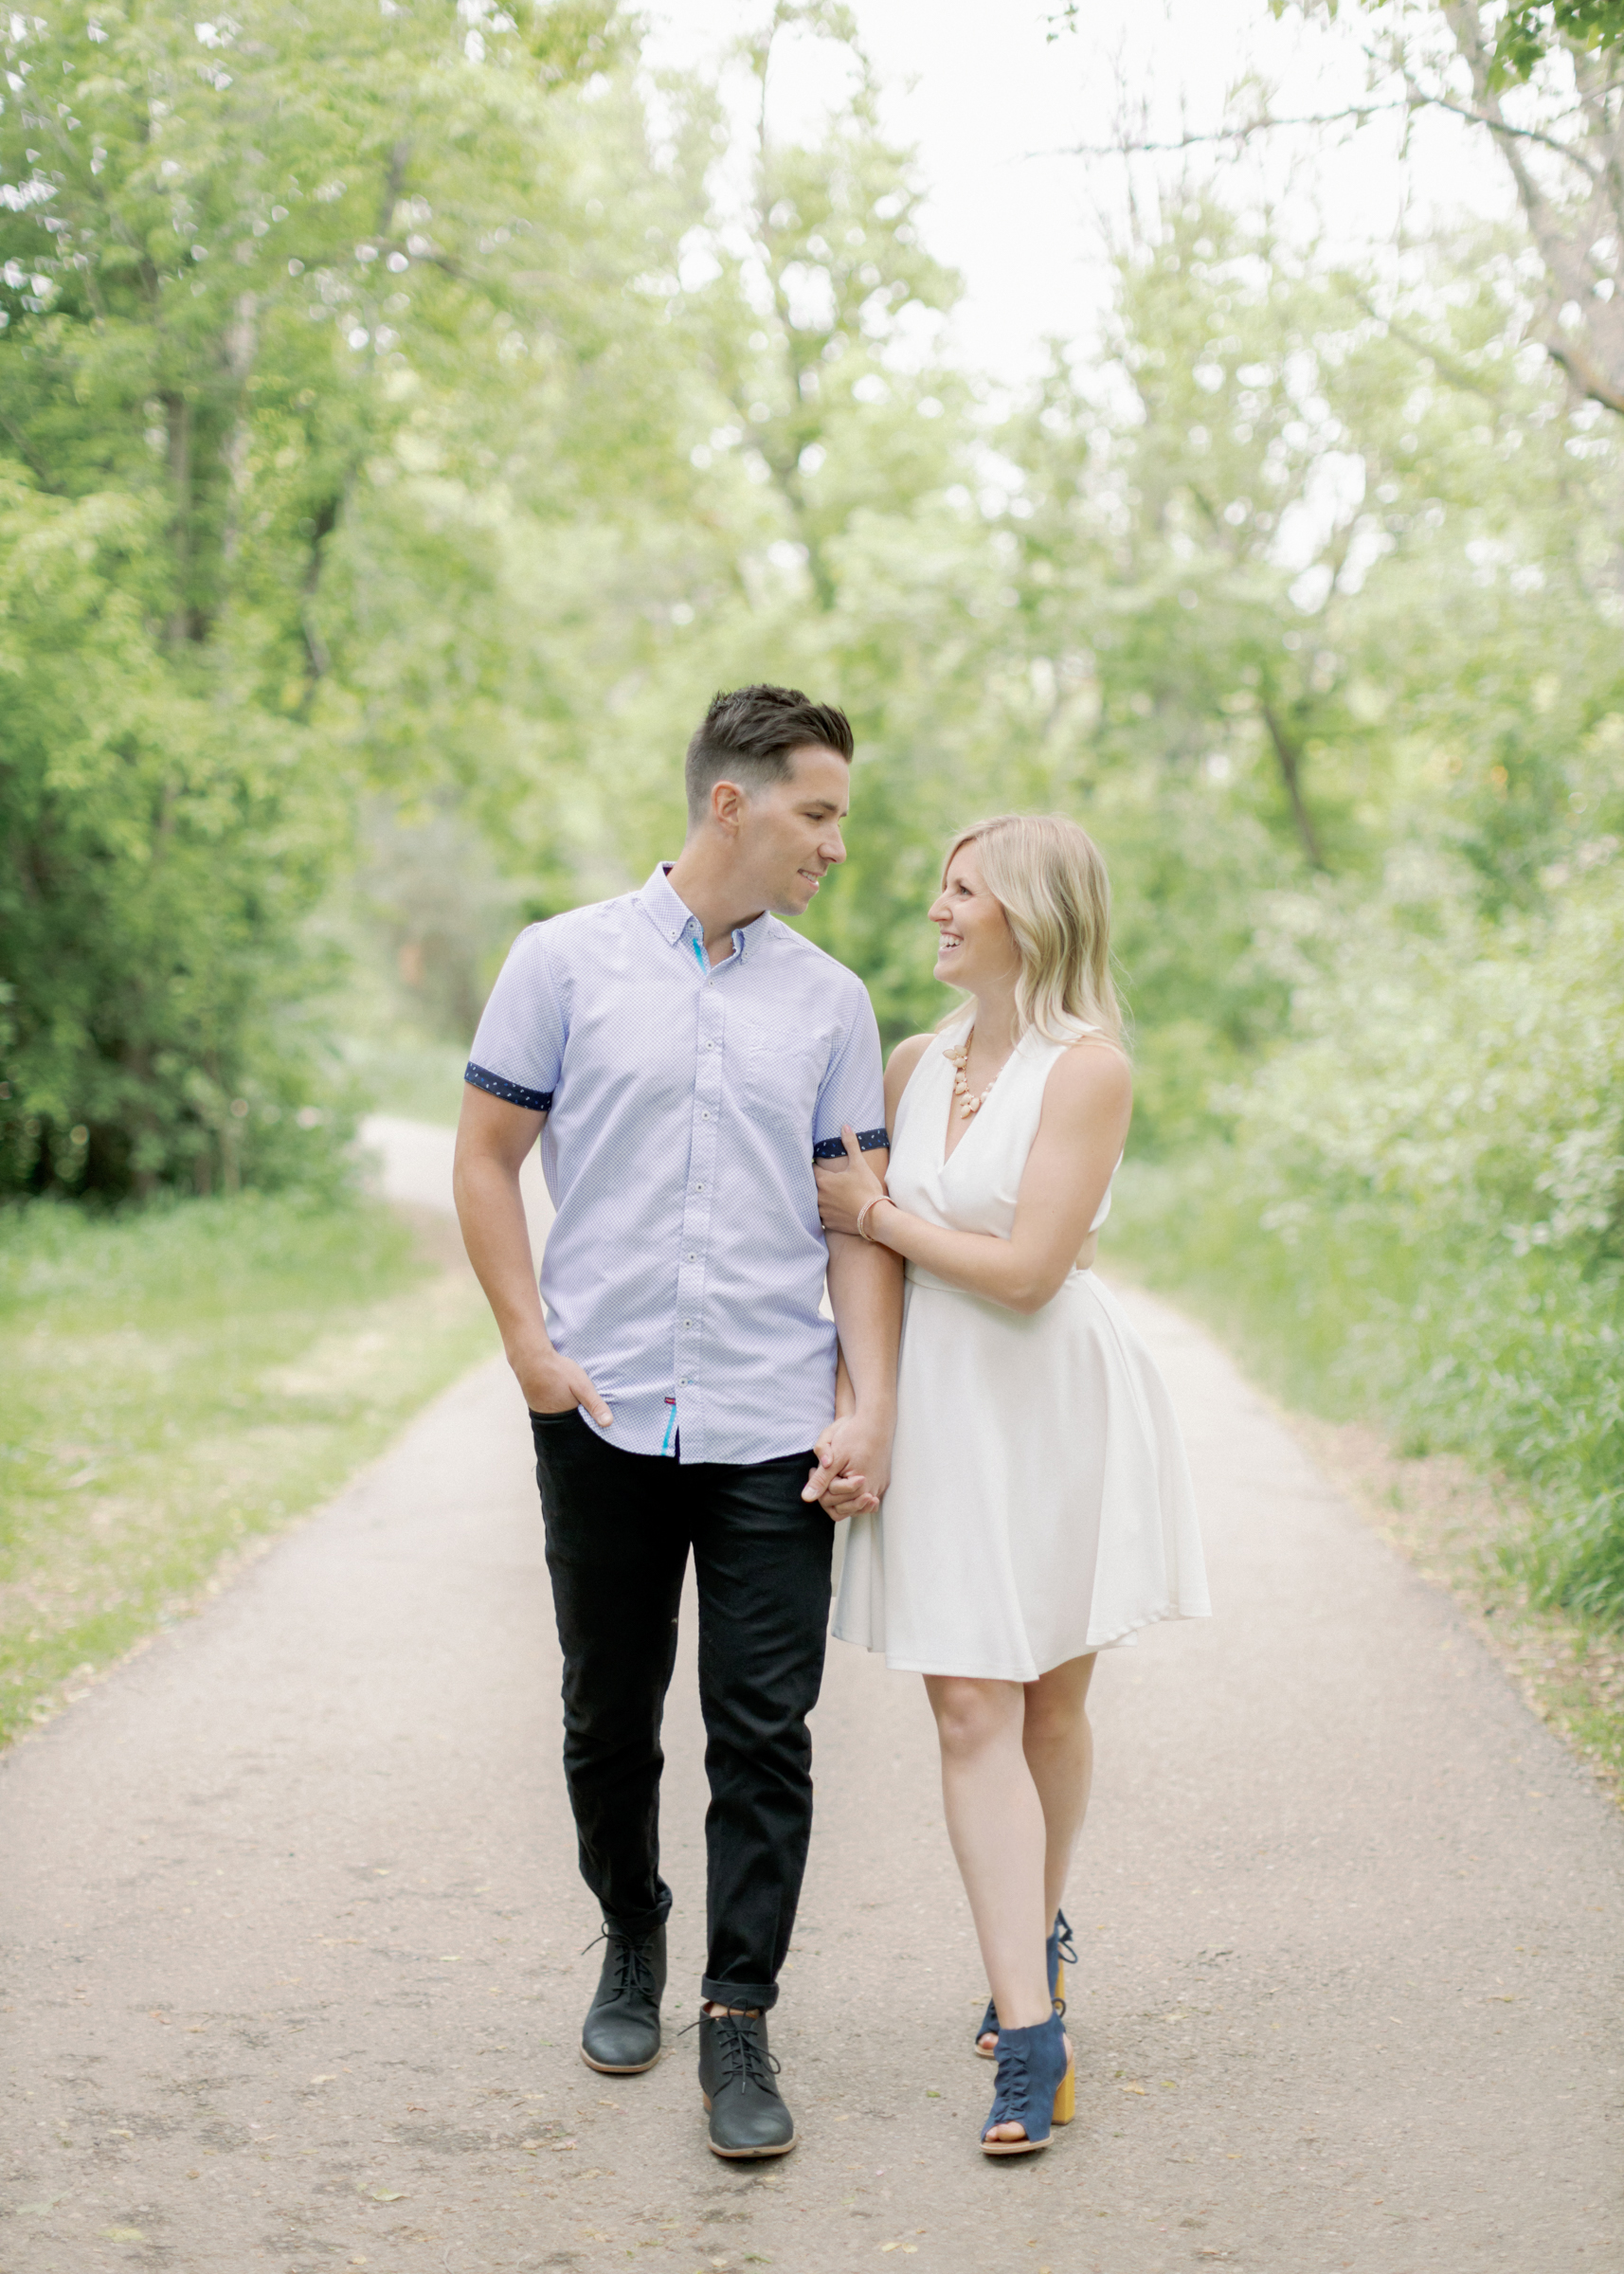 tanner and alyssa walking during engagement session